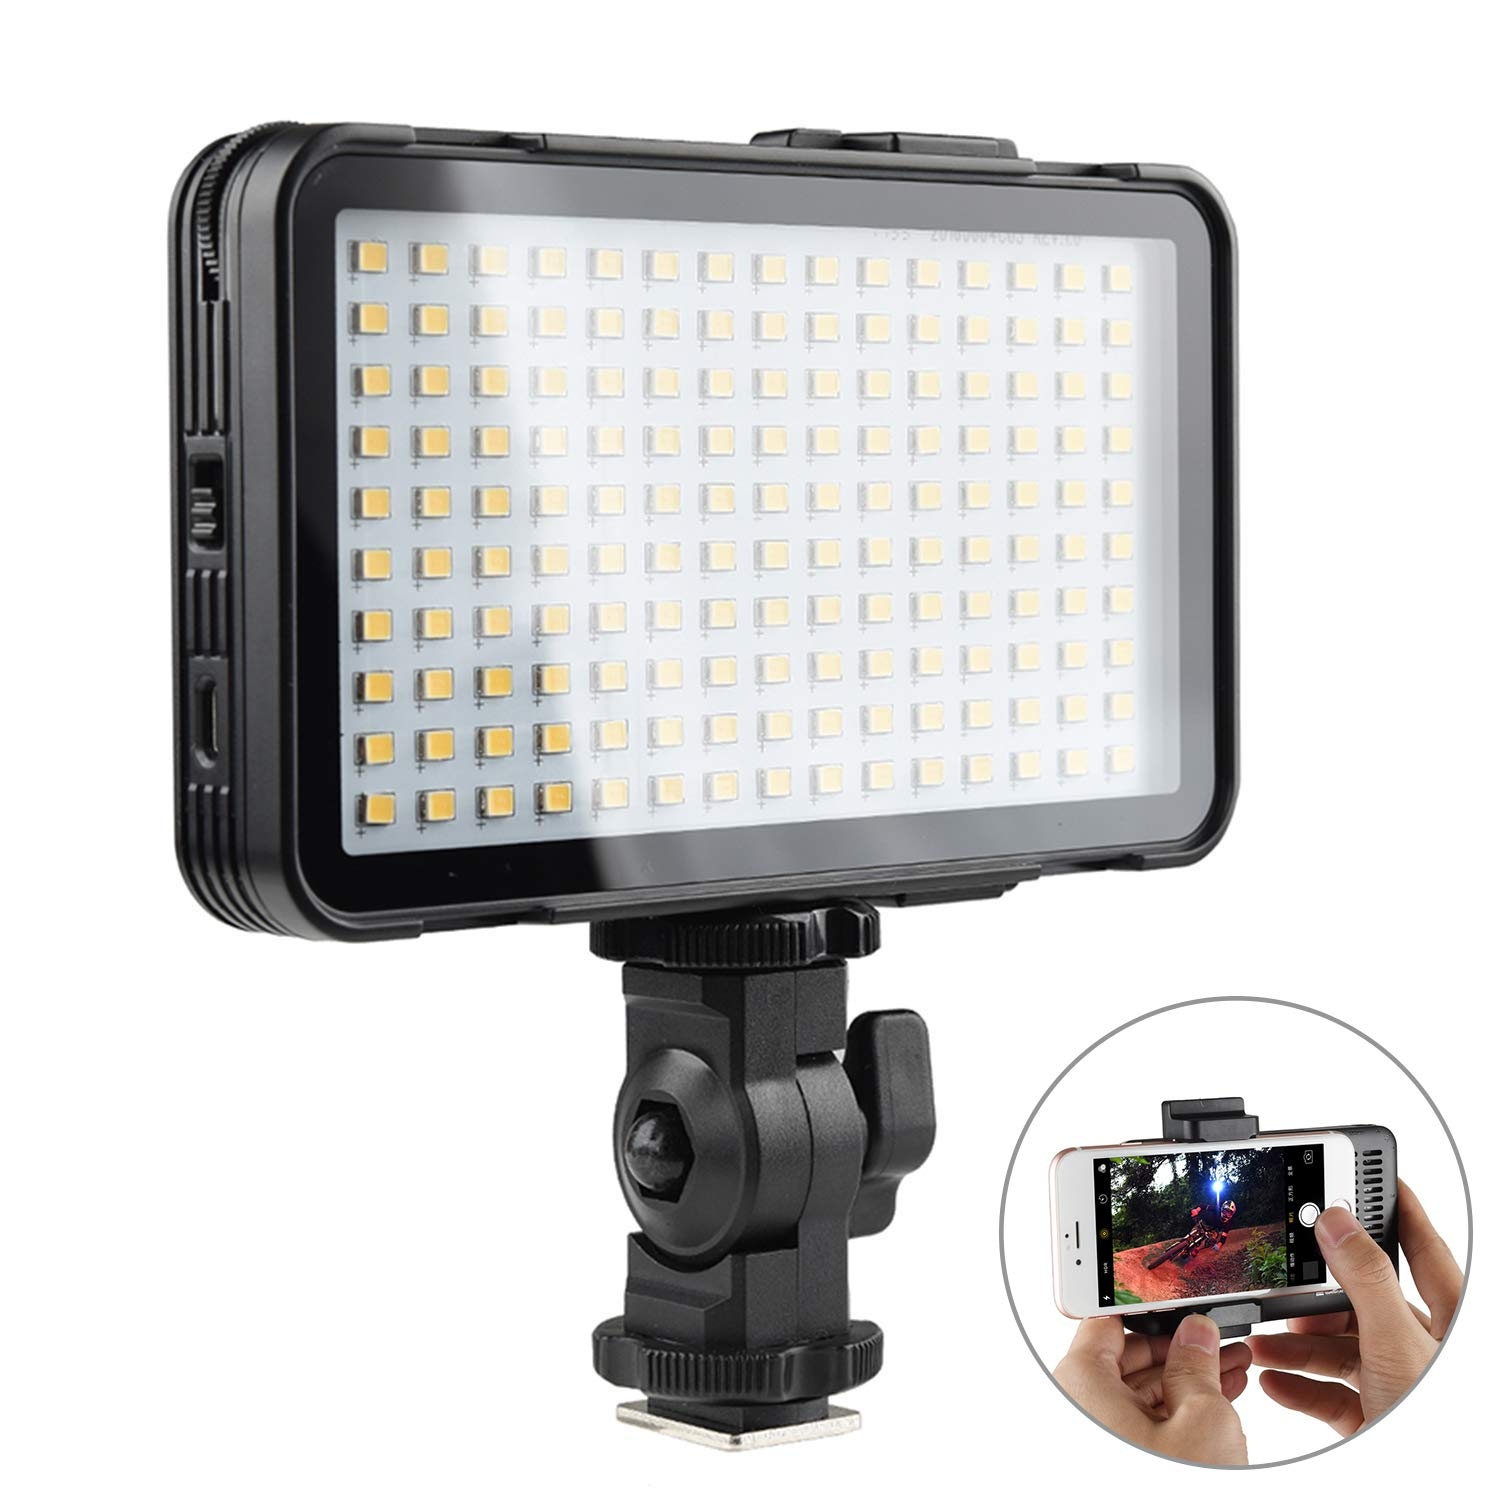 Godox On-Camera Video Lights LEDM150, Mobile Phone LED Video Light, Li Battery USB Charge Port Dimmable Ultra High Power LED Panel Video Light for Smart Phones Cameras by Godox